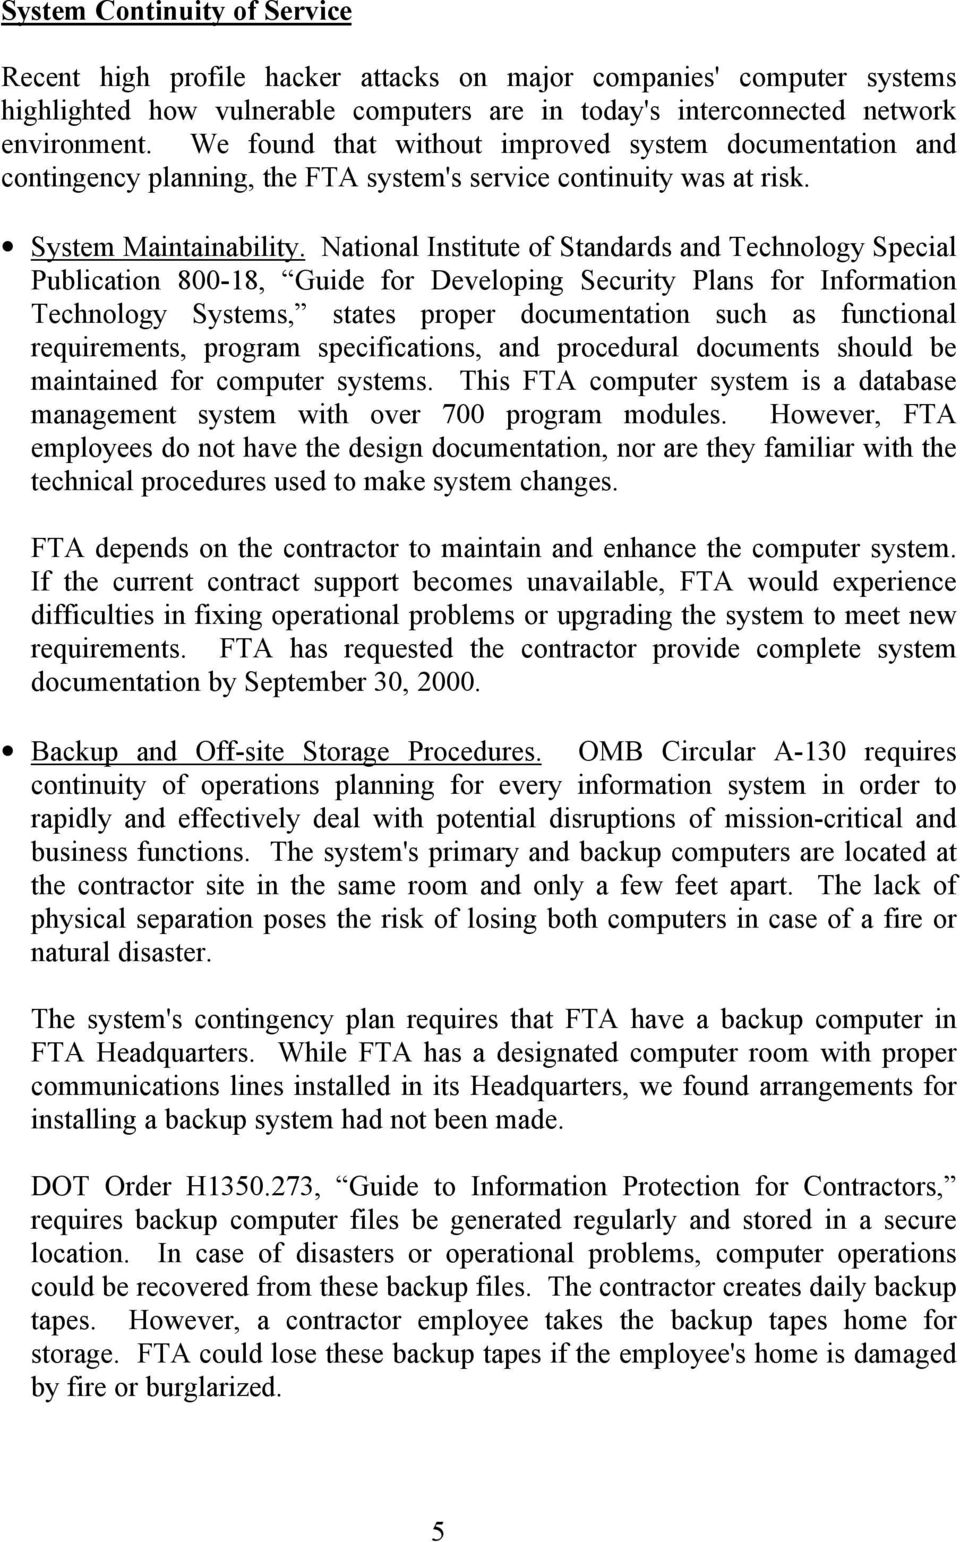 National Institute of Standards and Technology Special Publication 800-18, Guide for Developing Security Plans for Information Technology Systems, states proper documentation such as functional